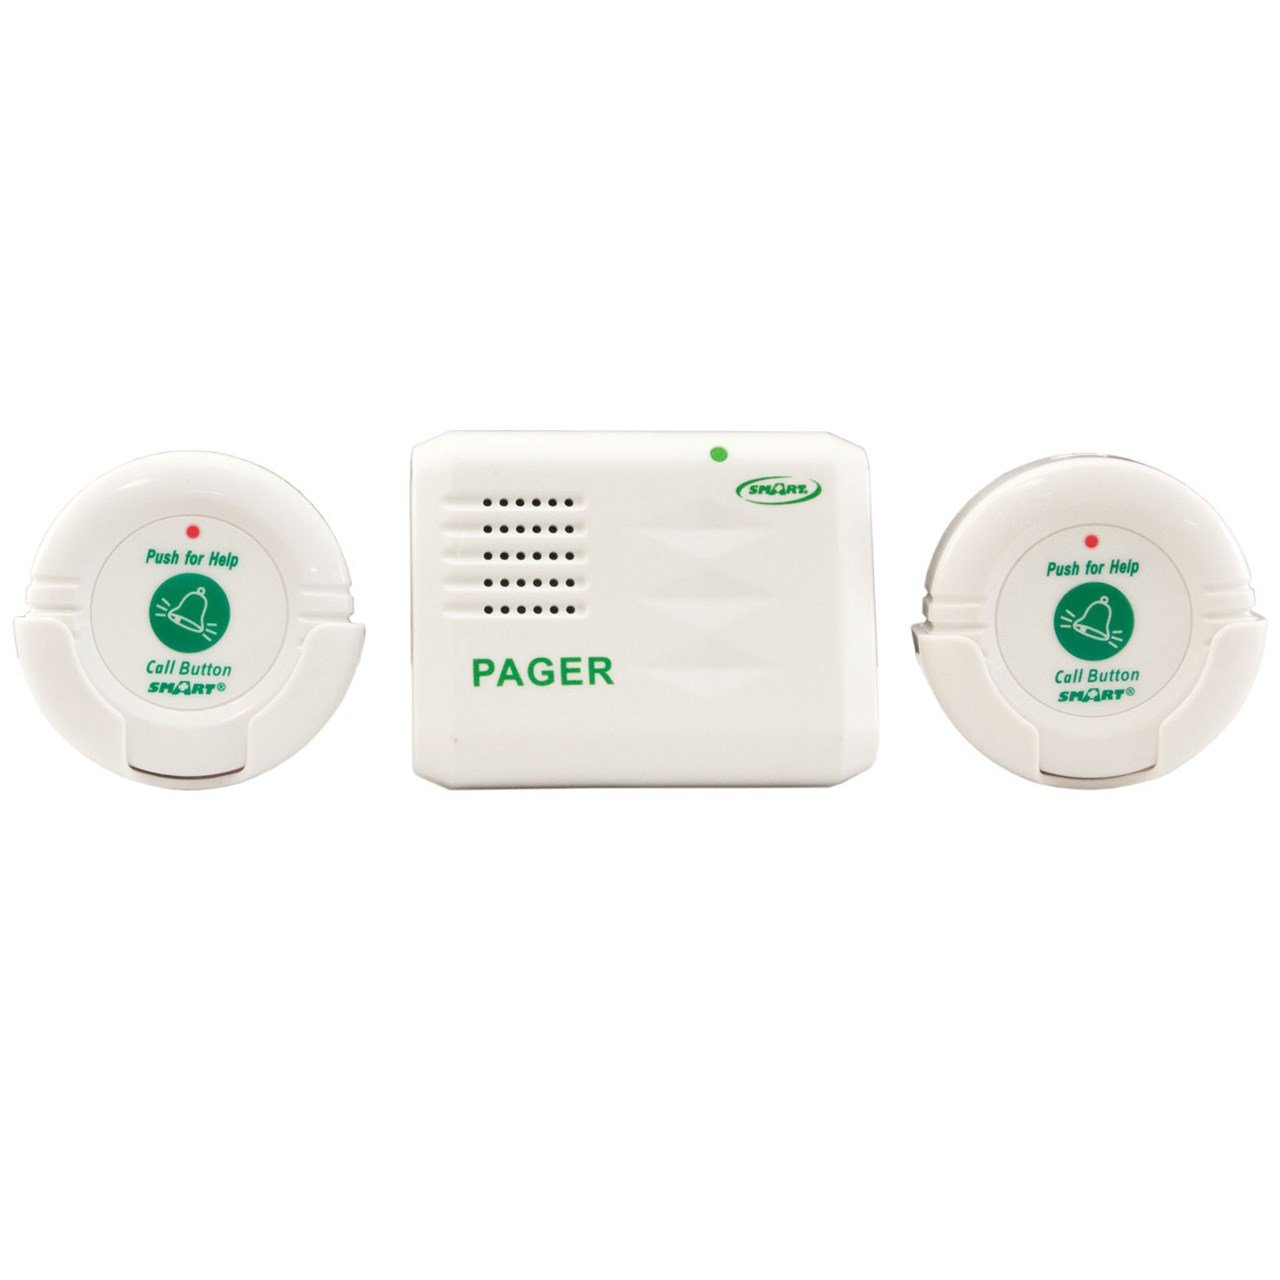 Personal Paging System - 2 Call Button and 1 Pager by Smart Caregiver